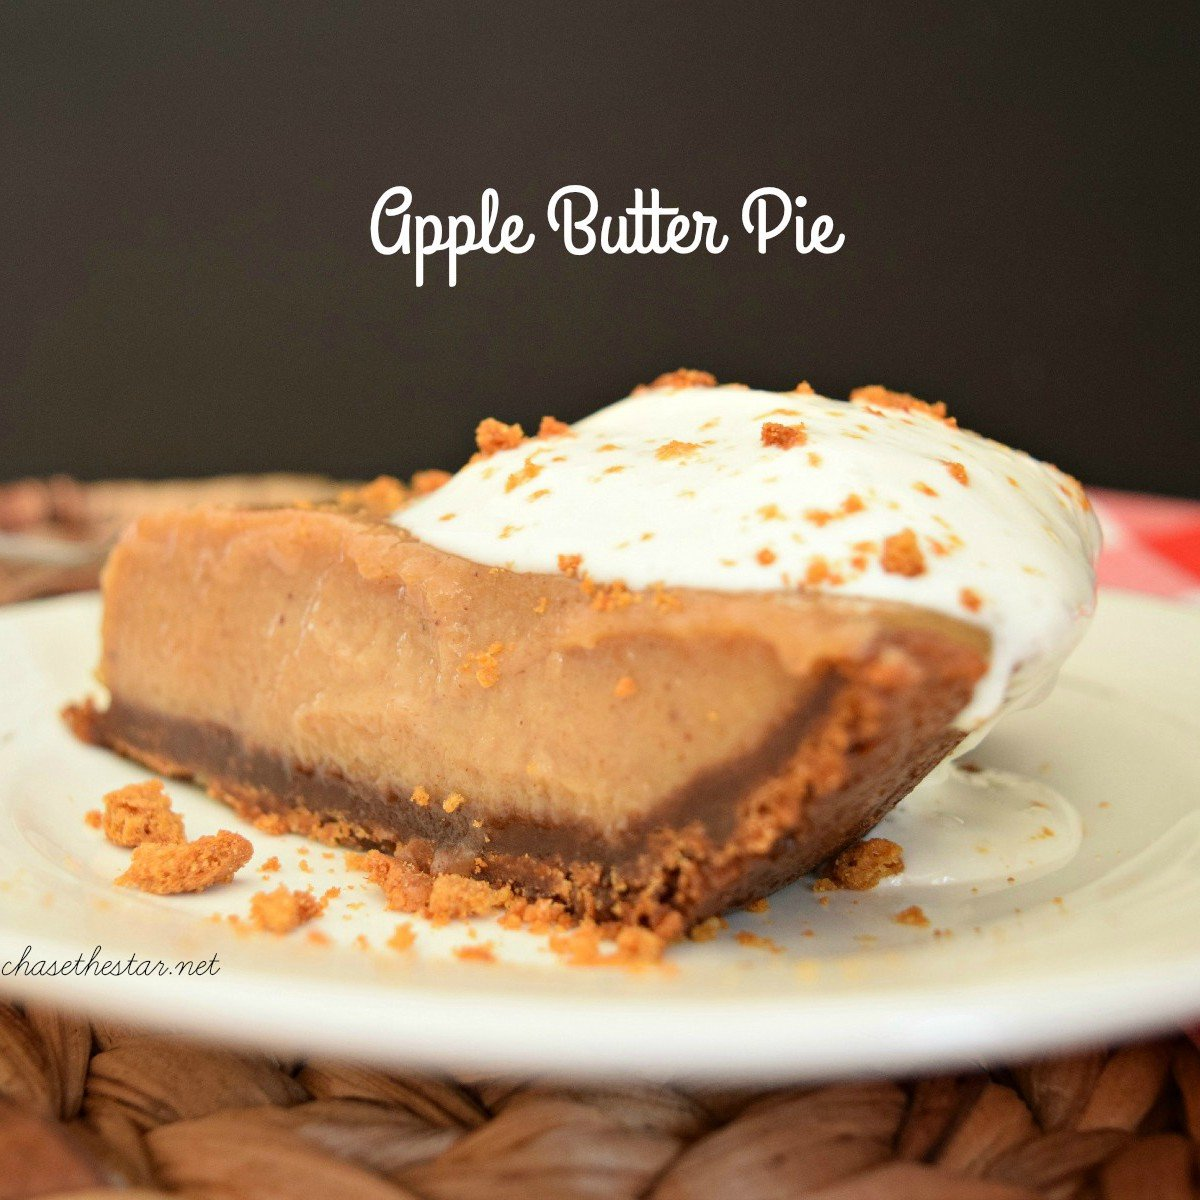 This-fall-make-an-Apple-Butter-Pie-This-is-an-easy-recipe-and-the-perfect-fall-dessert-WayfairPieBakeOff